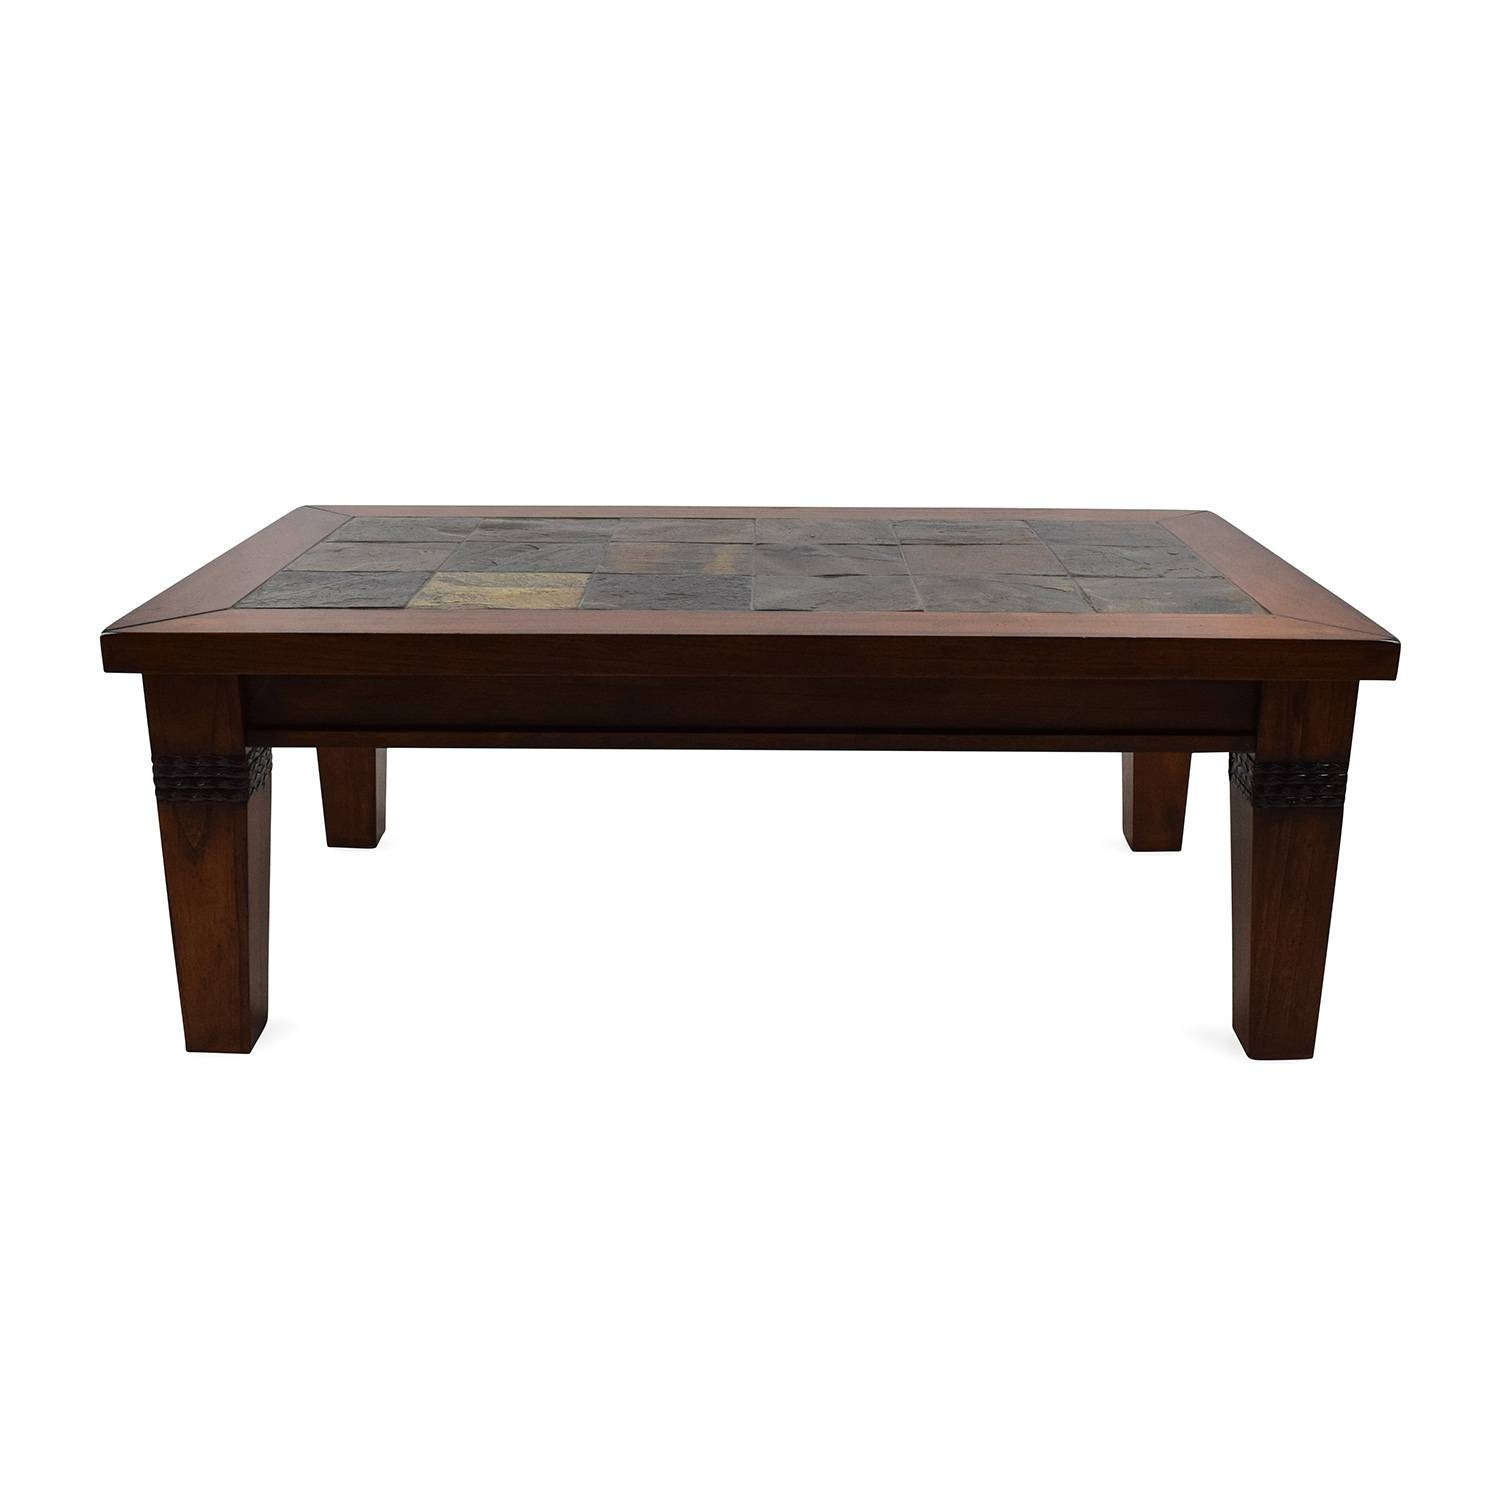 21% Off - Marble Top Coffee Table / Tables with Dining Coffee Tables (Image 2 of 15)